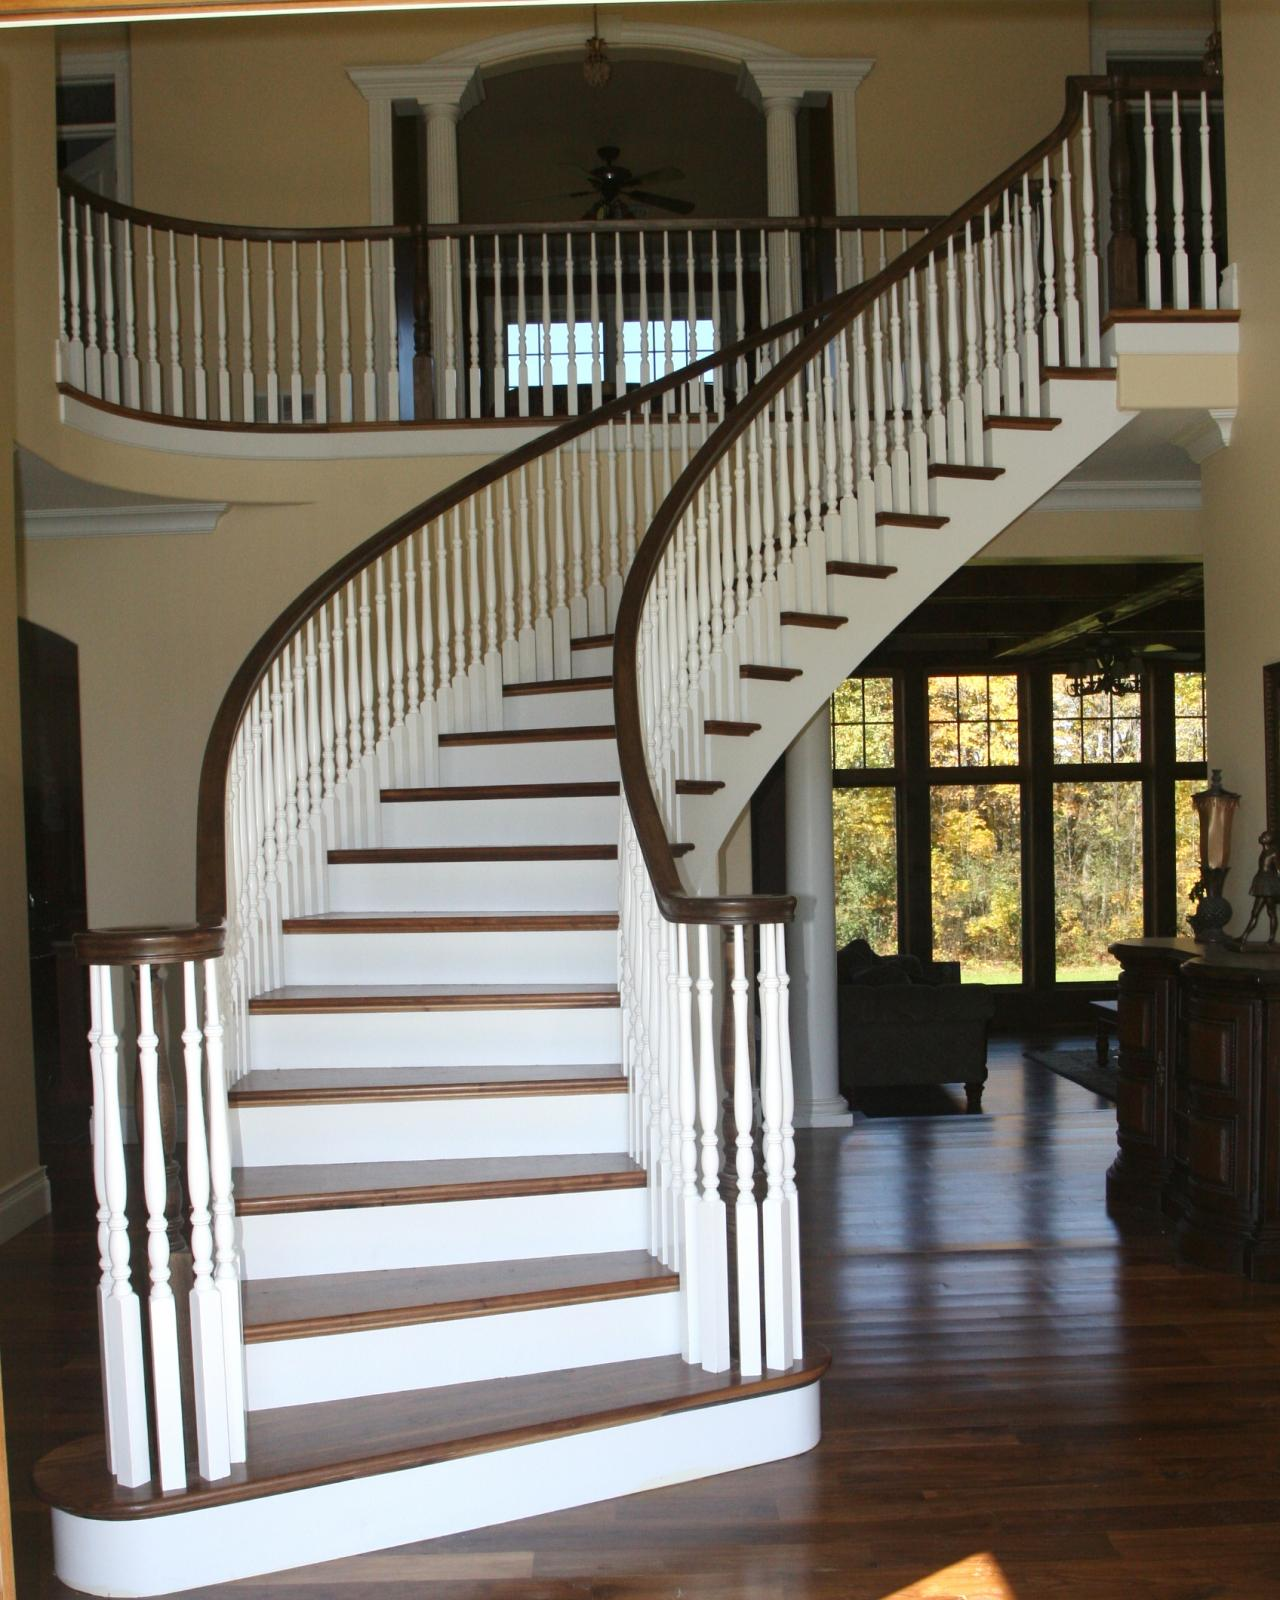 Curved Stairs. Choose Any Photo And Start A Slide Show